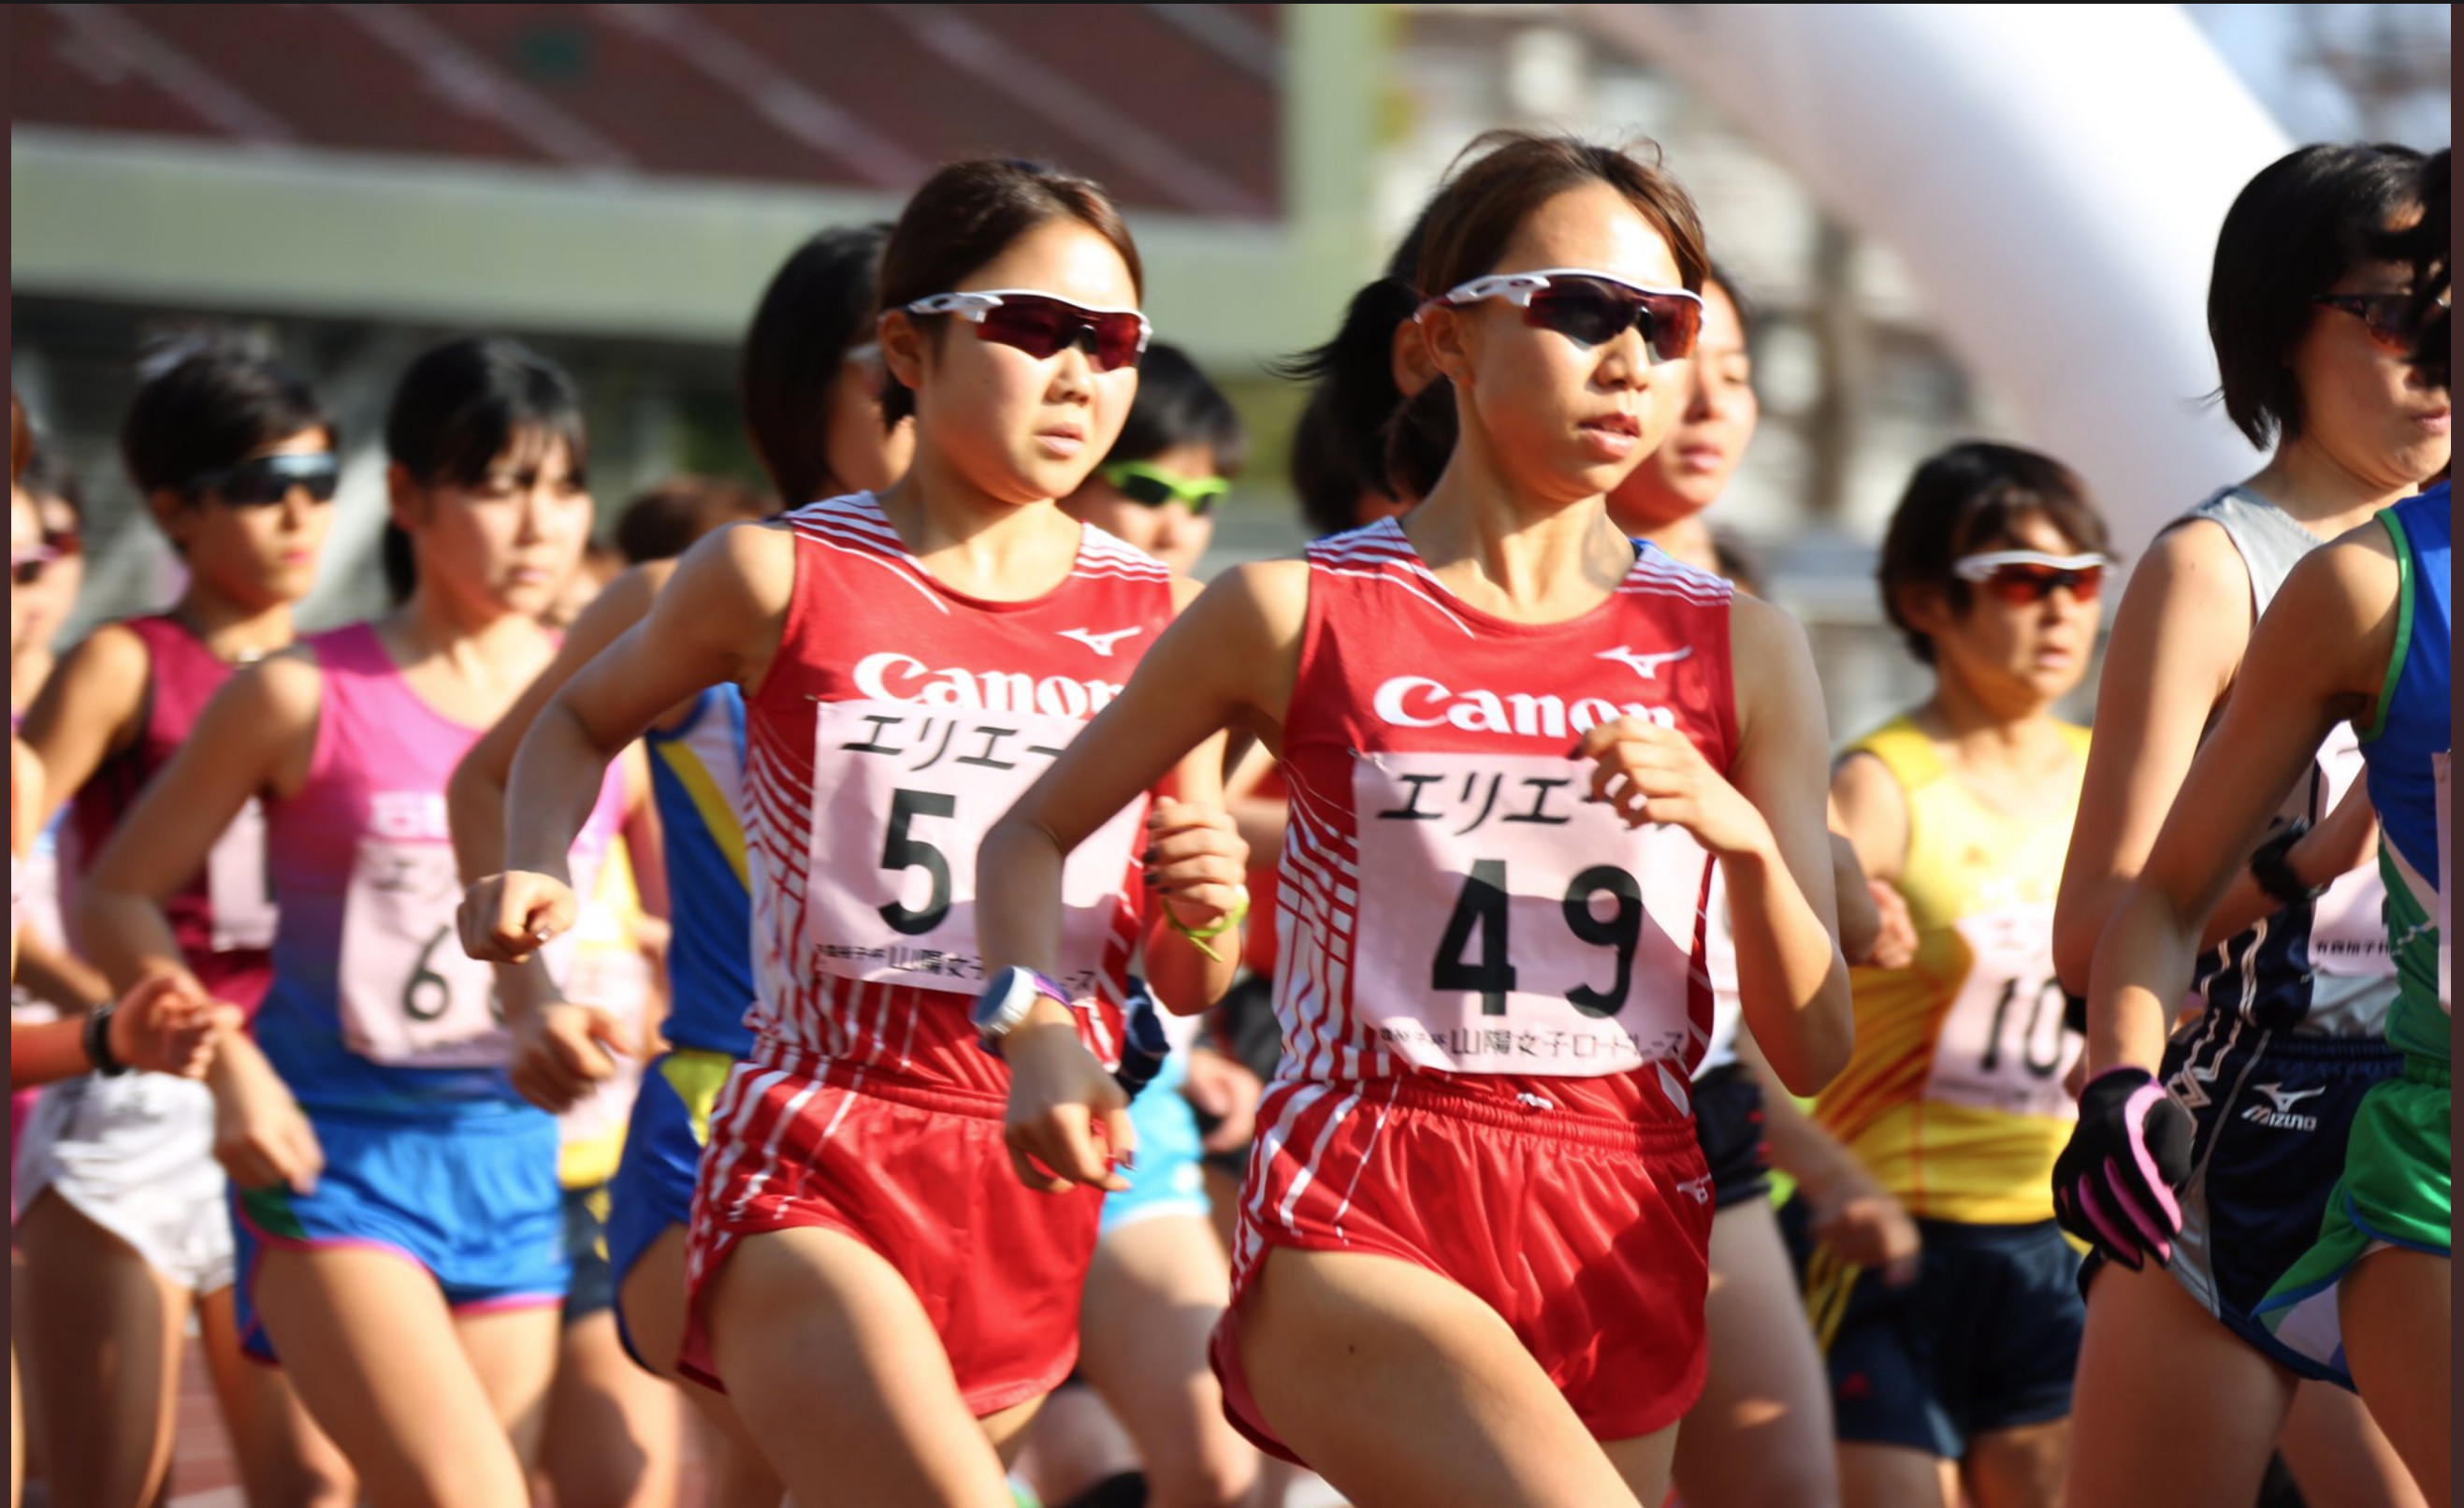 Fastest half marathon time by a Japanese woman in over 10 years was run today at Sanyo Ladies Road Race